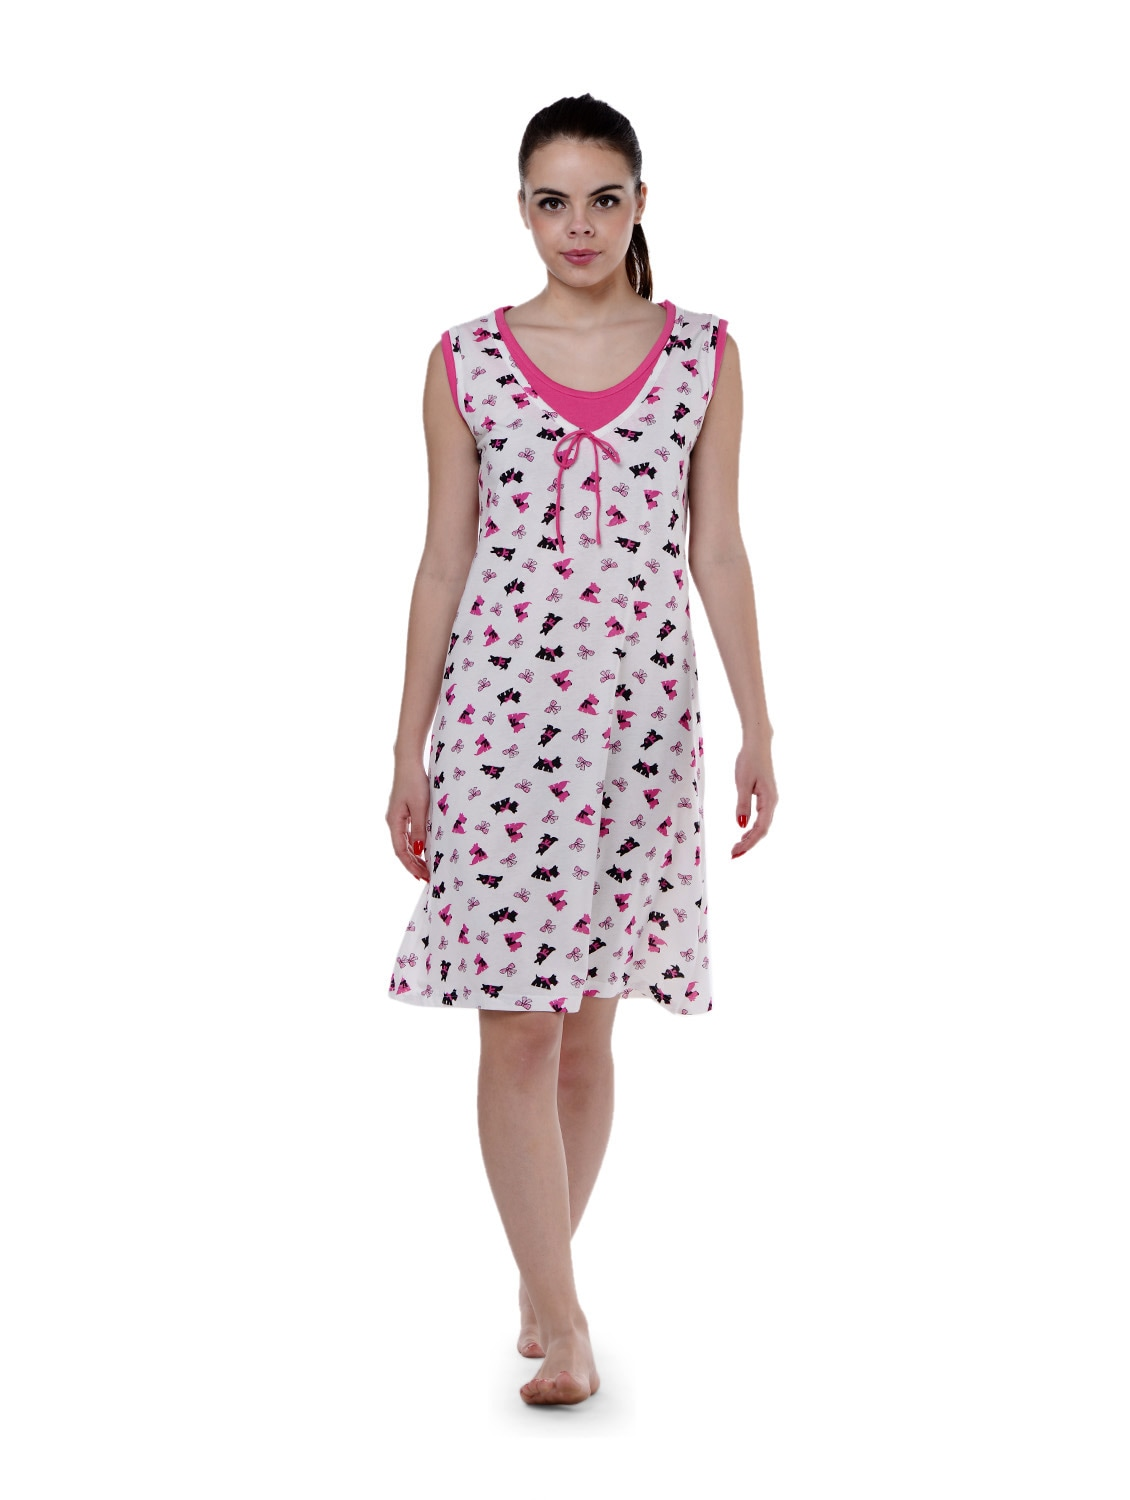 64883c7237a Buy Puppy Print Short Nighty for Women from Privatelives for ₹899 at 0% off